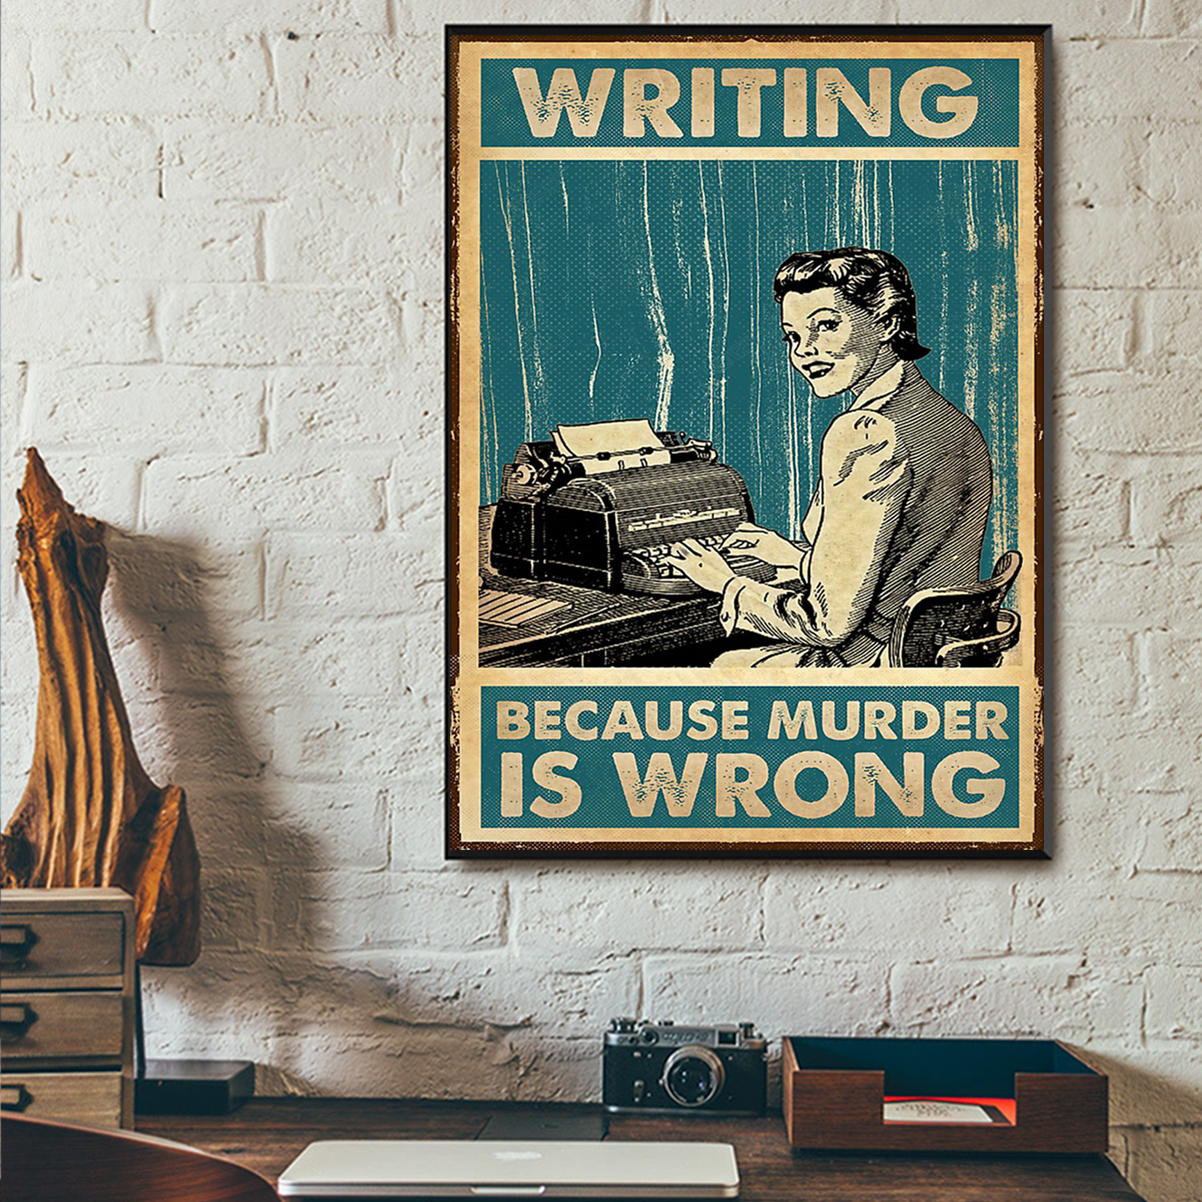 Writing because murder is wrong poster A1